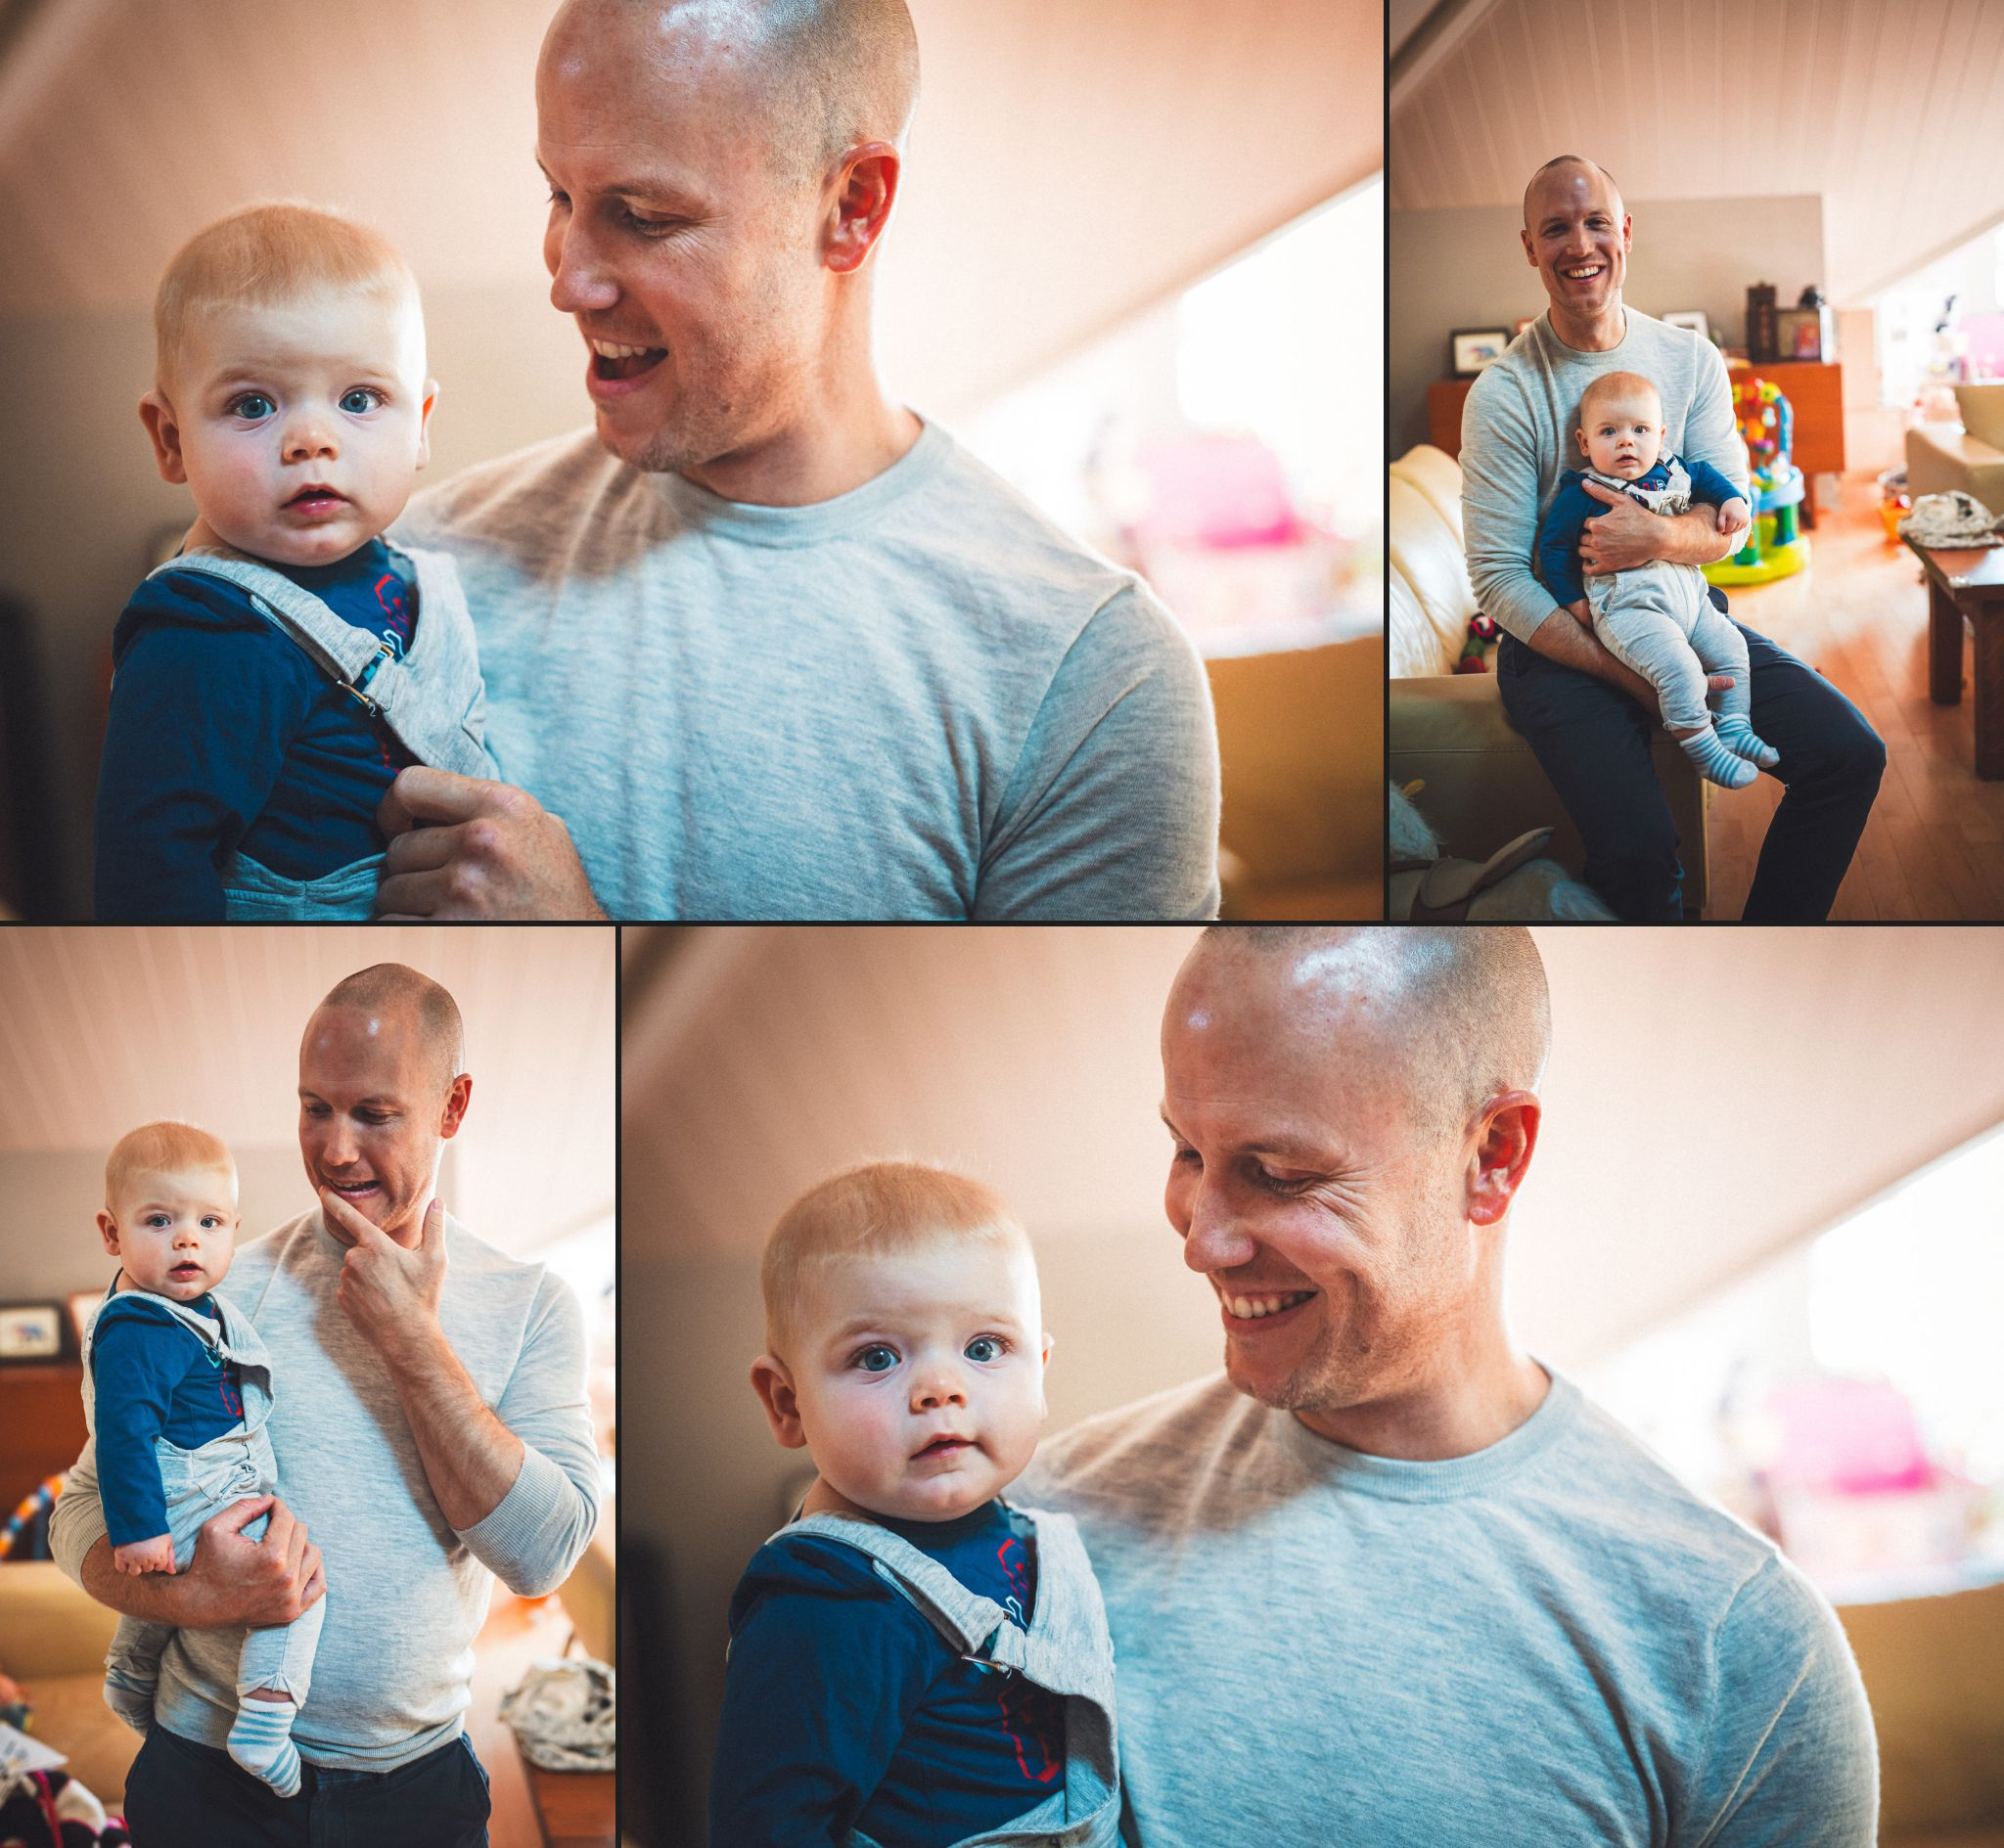 Collage of father with newborn son